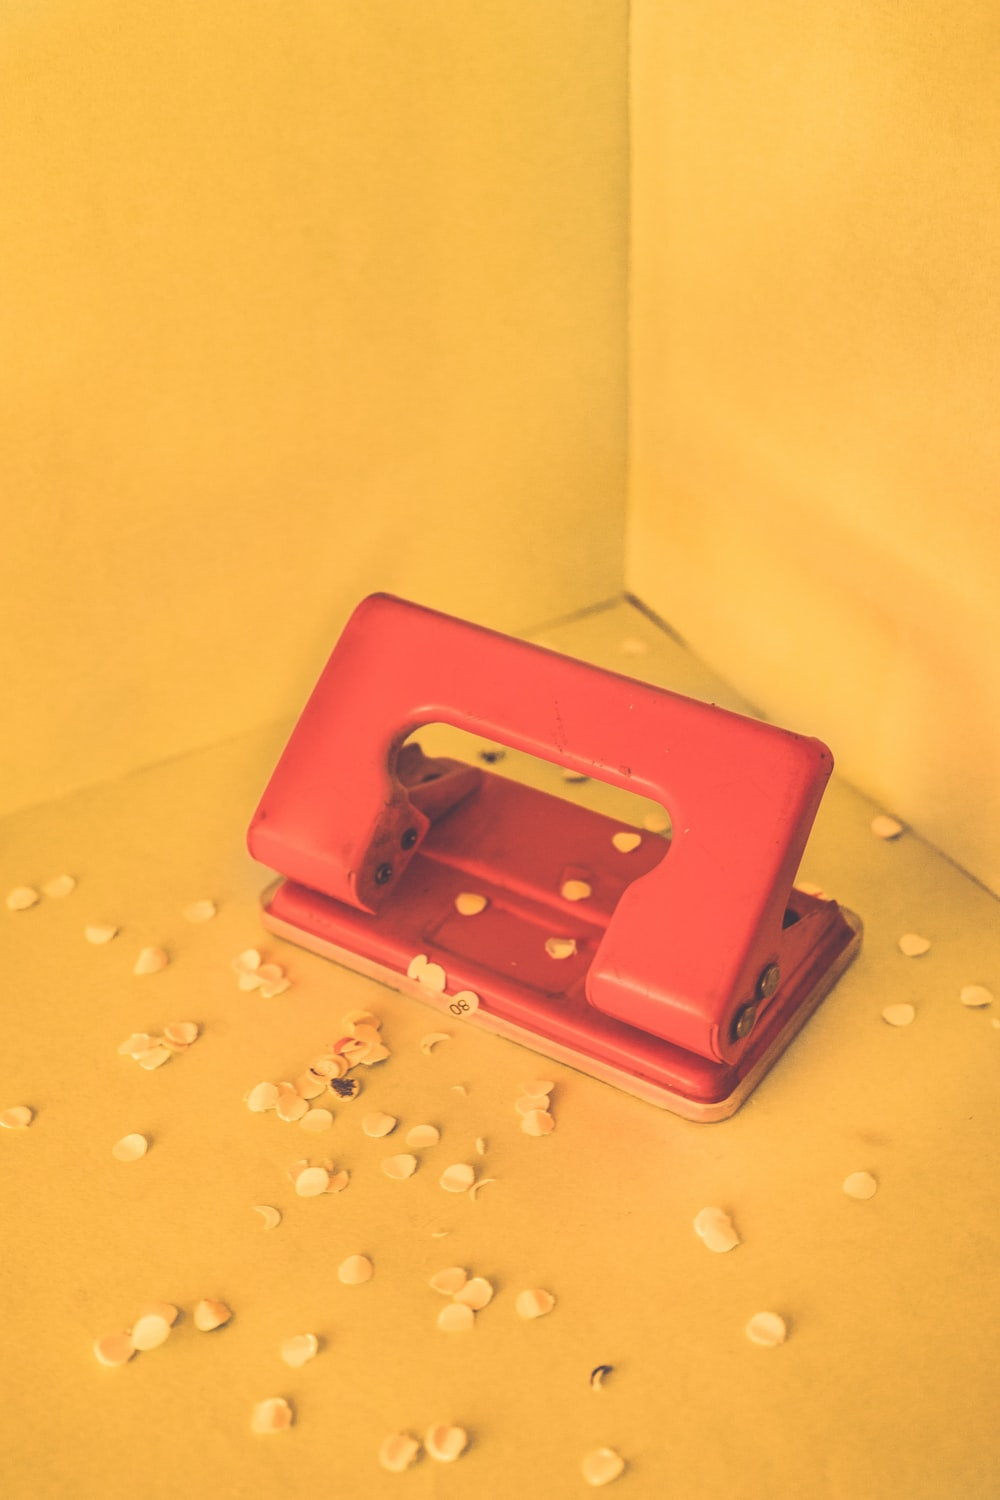 red 2-hole puncher with paper debris